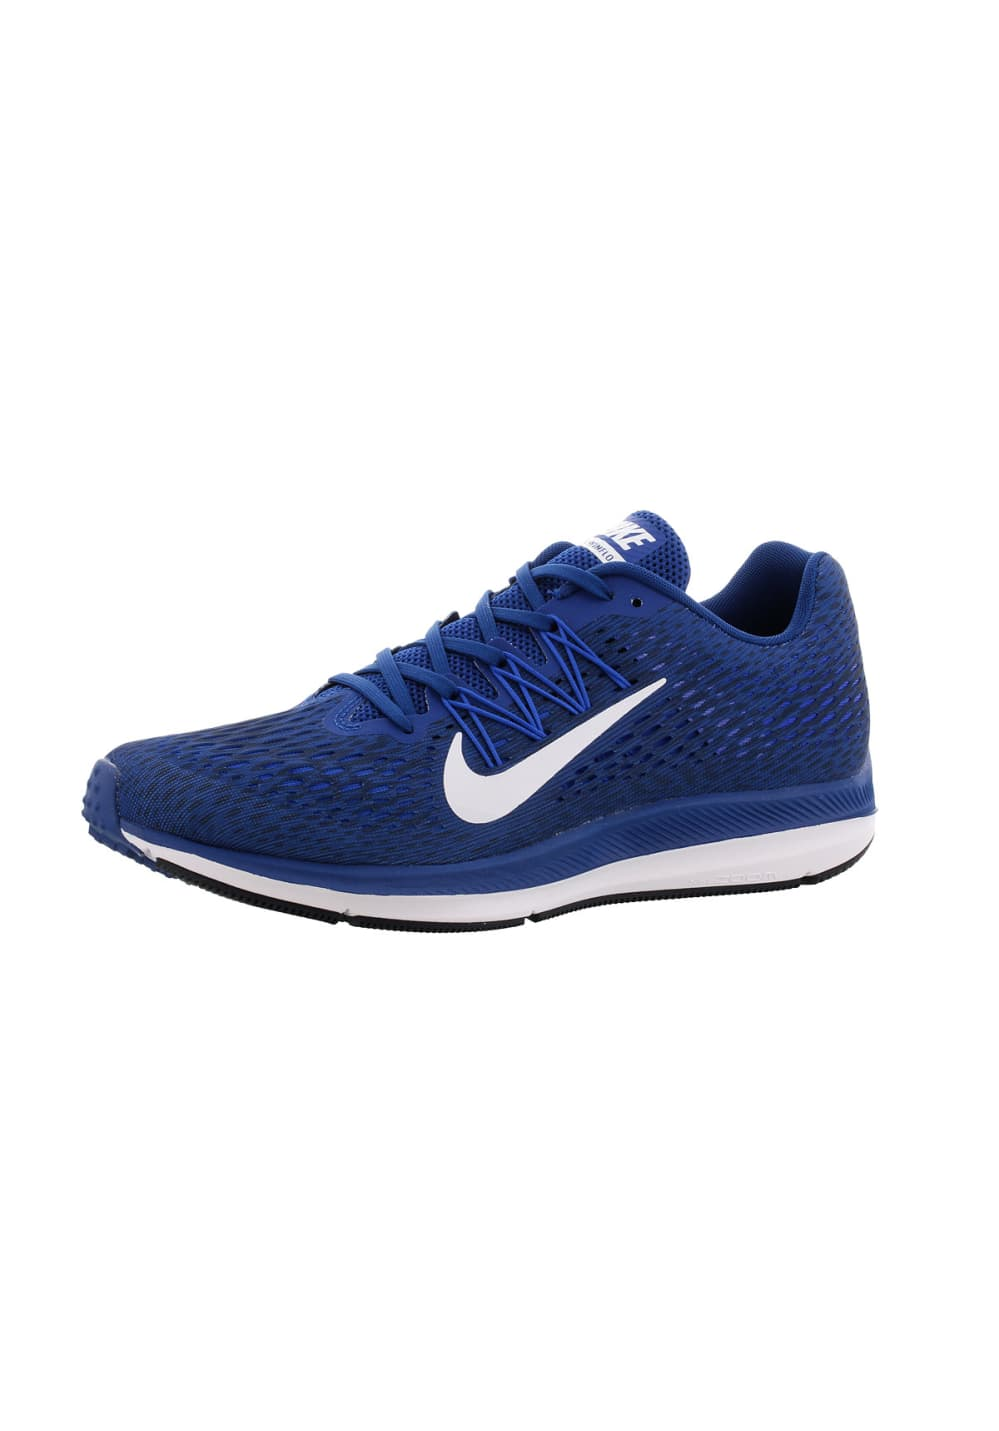 on sale e08a4 ccb05 Nike Zoom Winflo 5 - Running shoes for Men - Blue